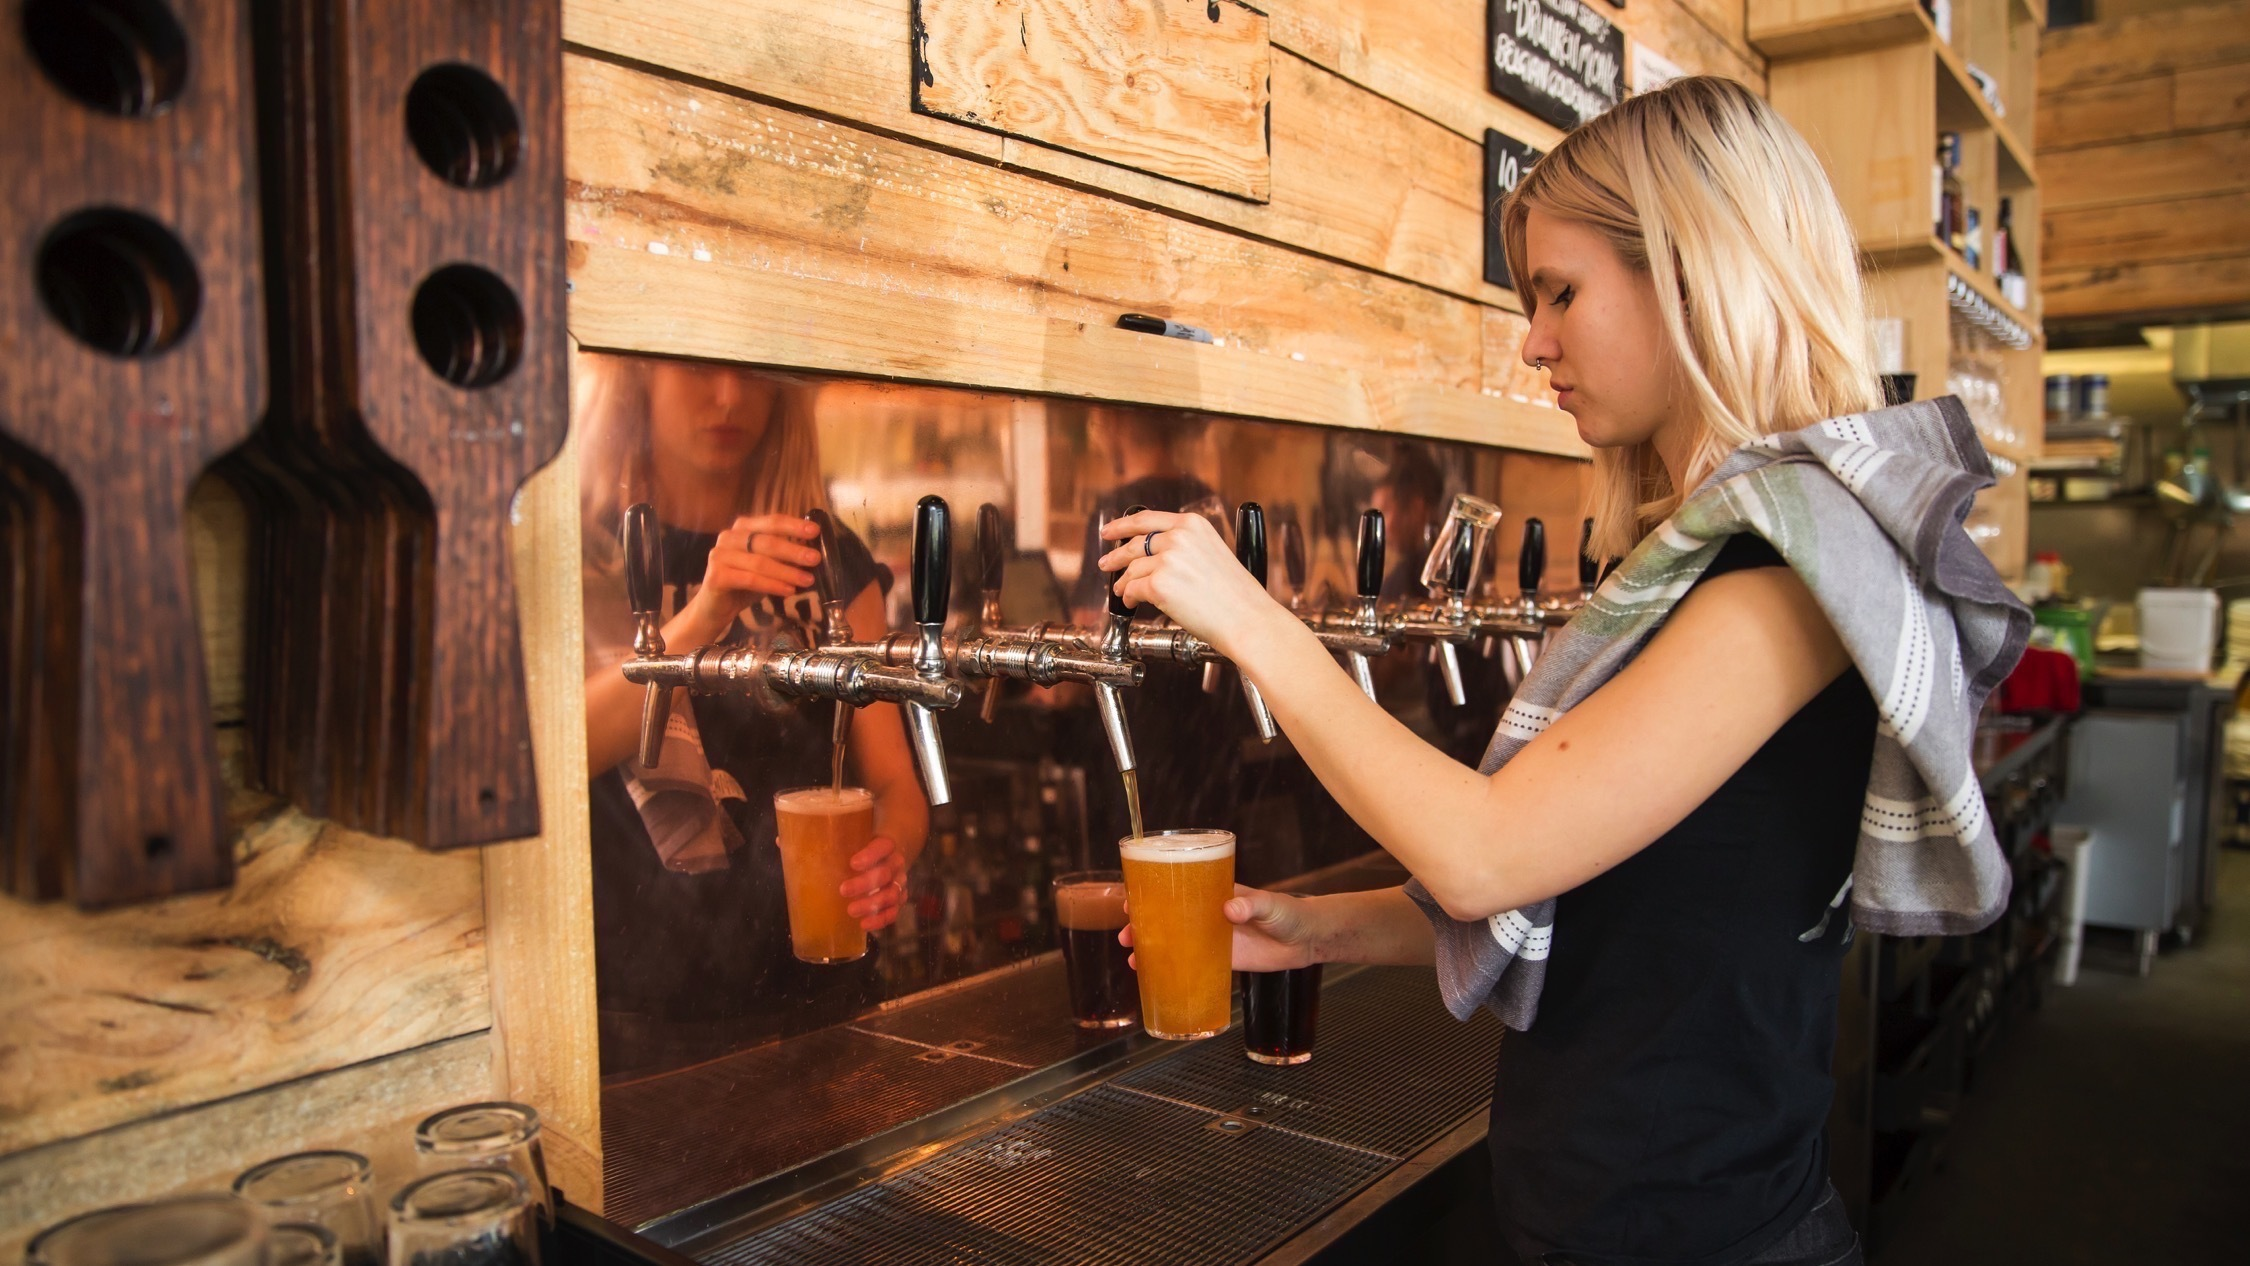 Pouring drinks at Rocks Brewery and Bar